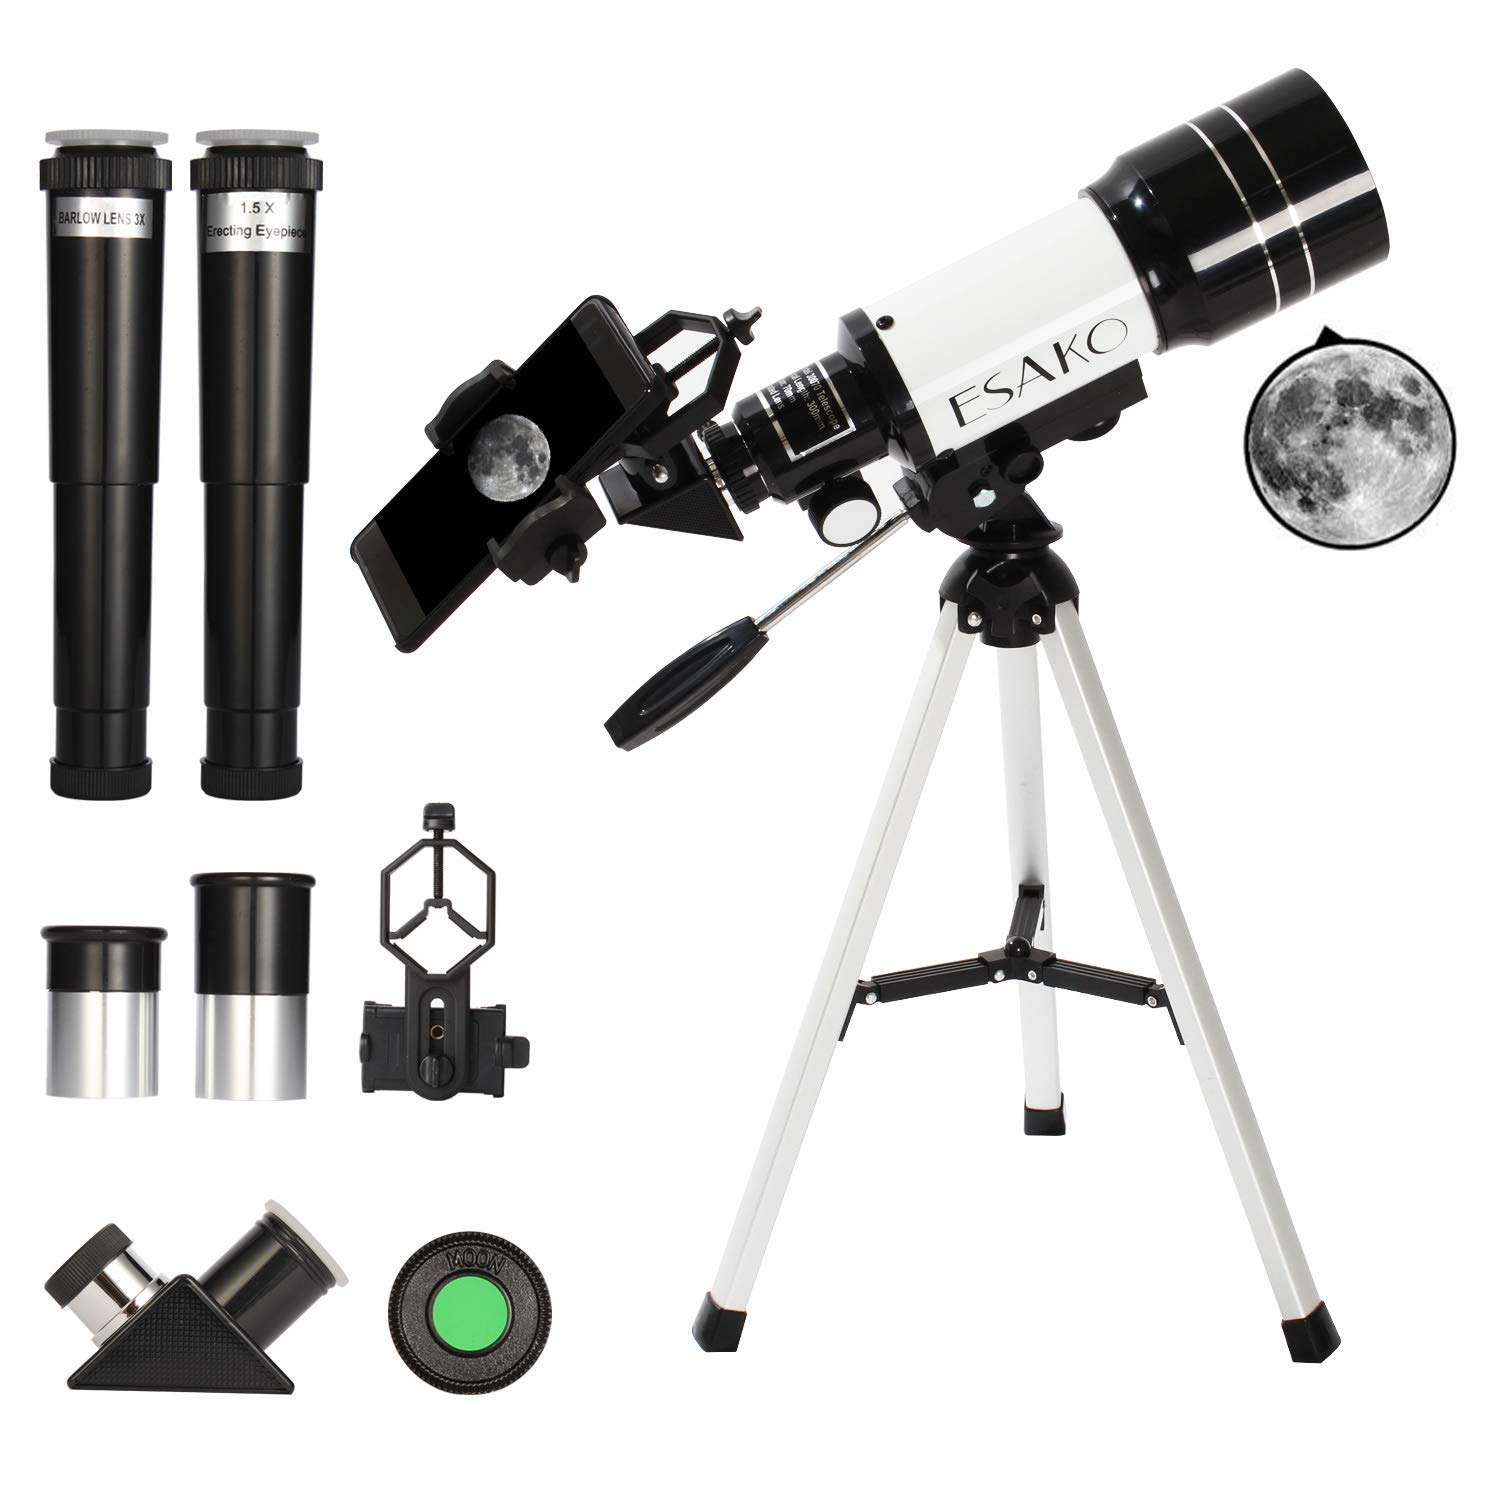 ESAKO Telescope for Kids & Beginners 70mm Portable Astronomical Telescopes with Phone Mount Moon Filter & 3X Barlow Lens by ESAKO